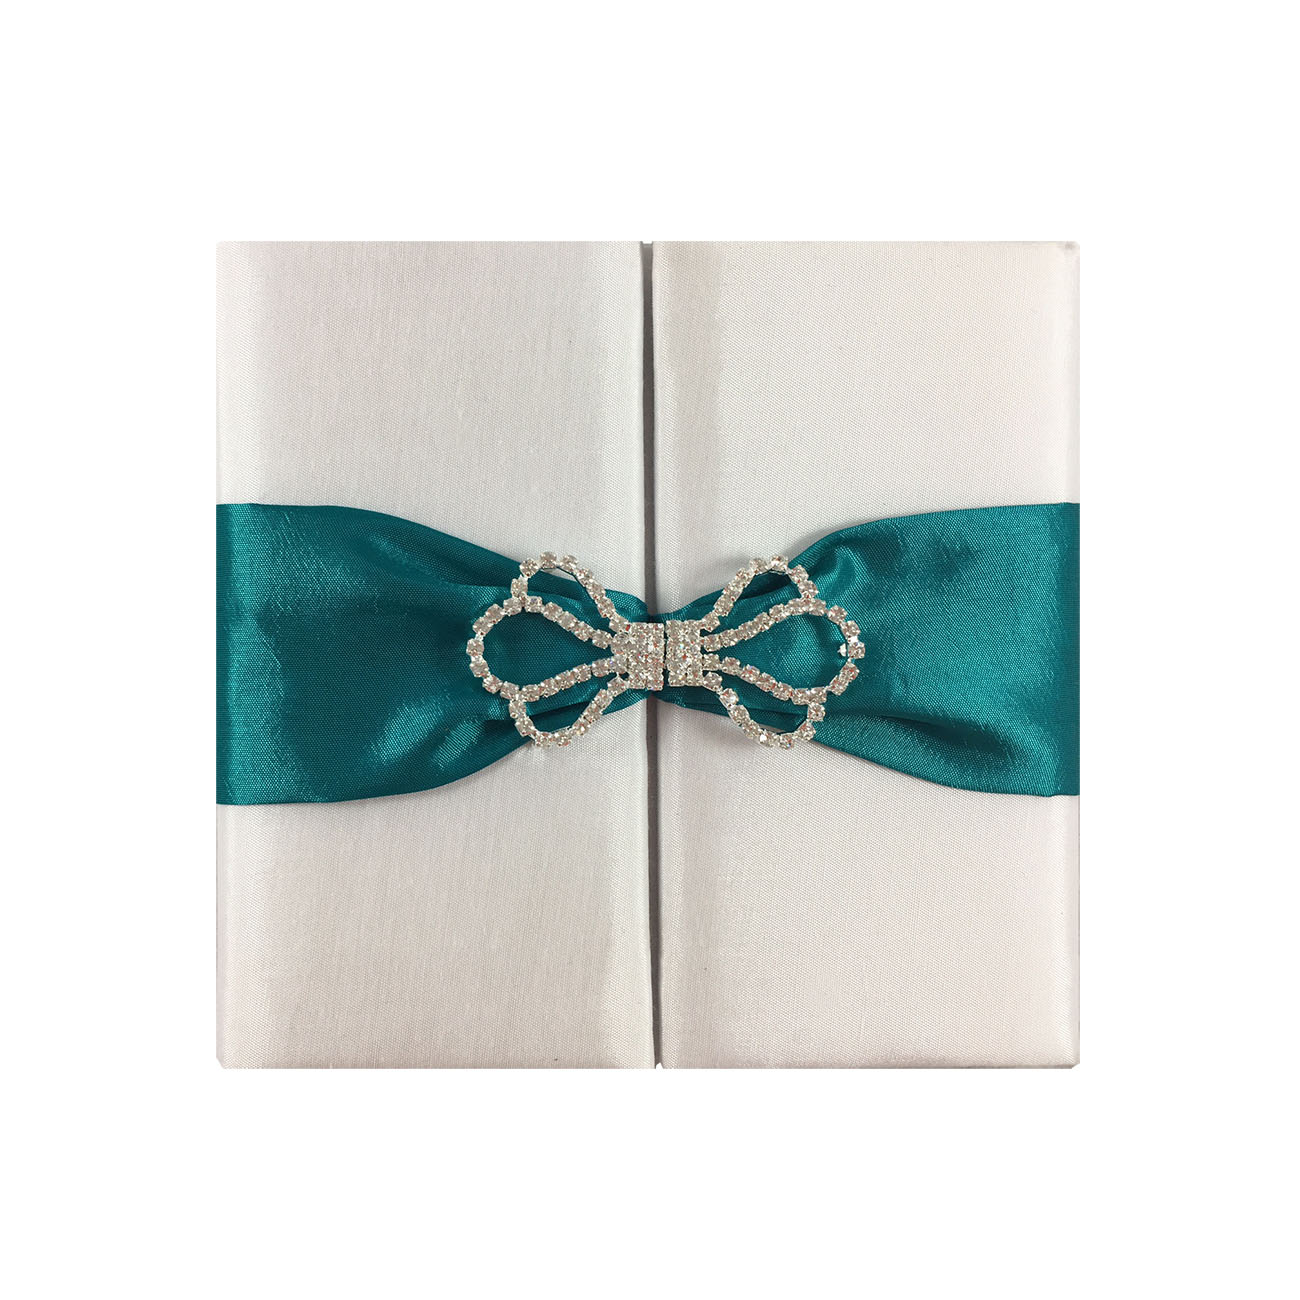 White wedding invitation with teal ribbon and rhinestone clasp